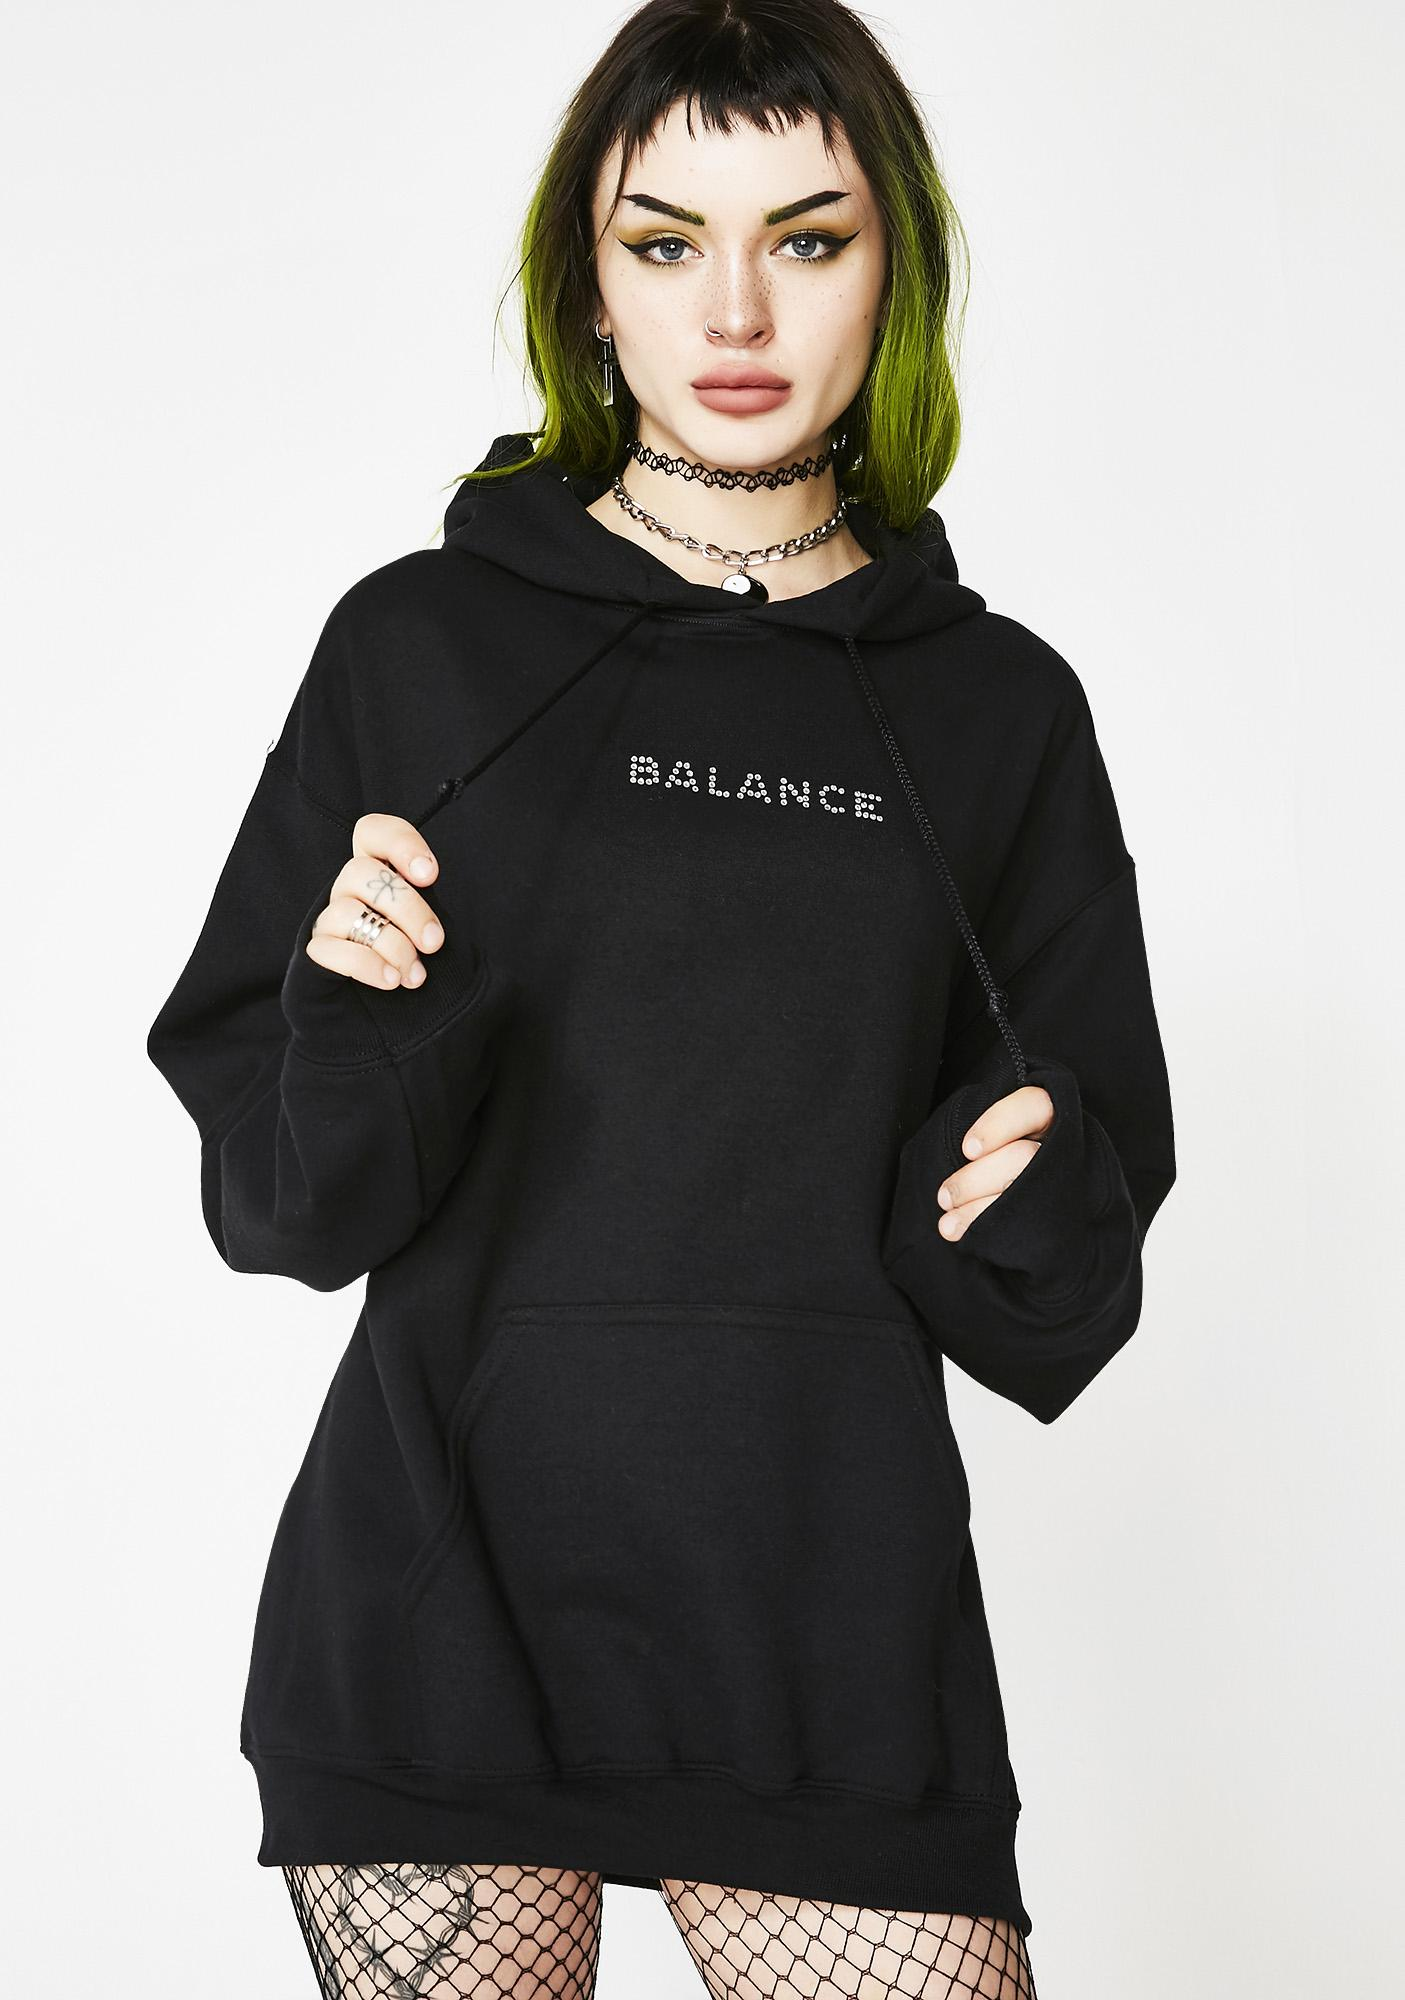 balance-hoodie by petals-and-peacocks